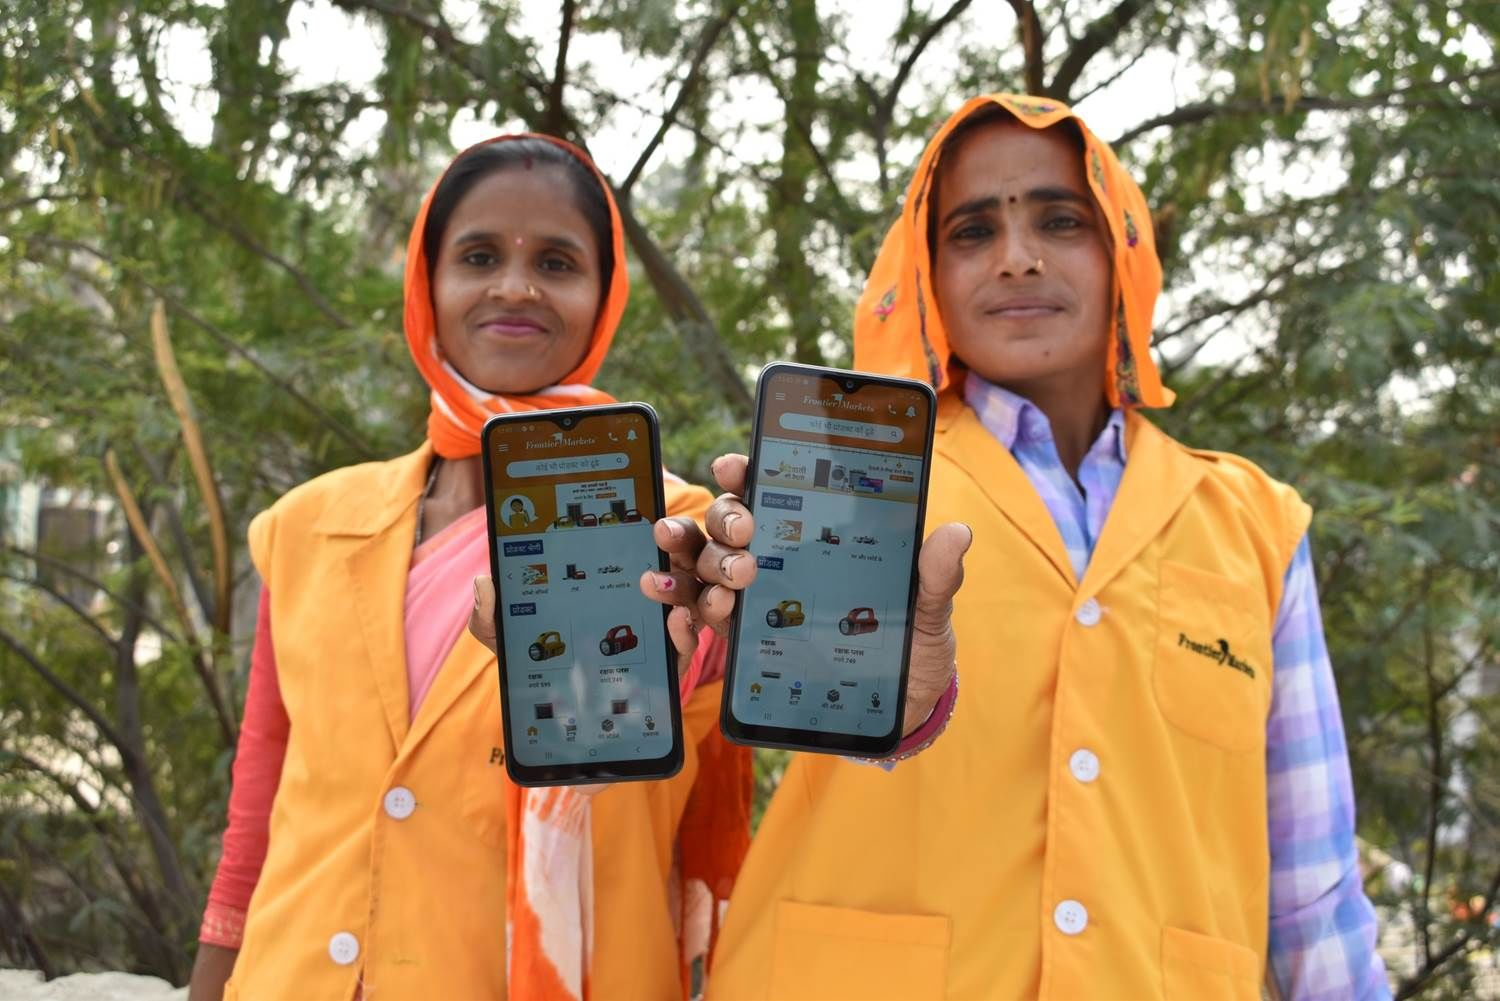 This Jaipur Woman Is Helping 10,000 Rural Women Earn Steady Income Through Her Startup